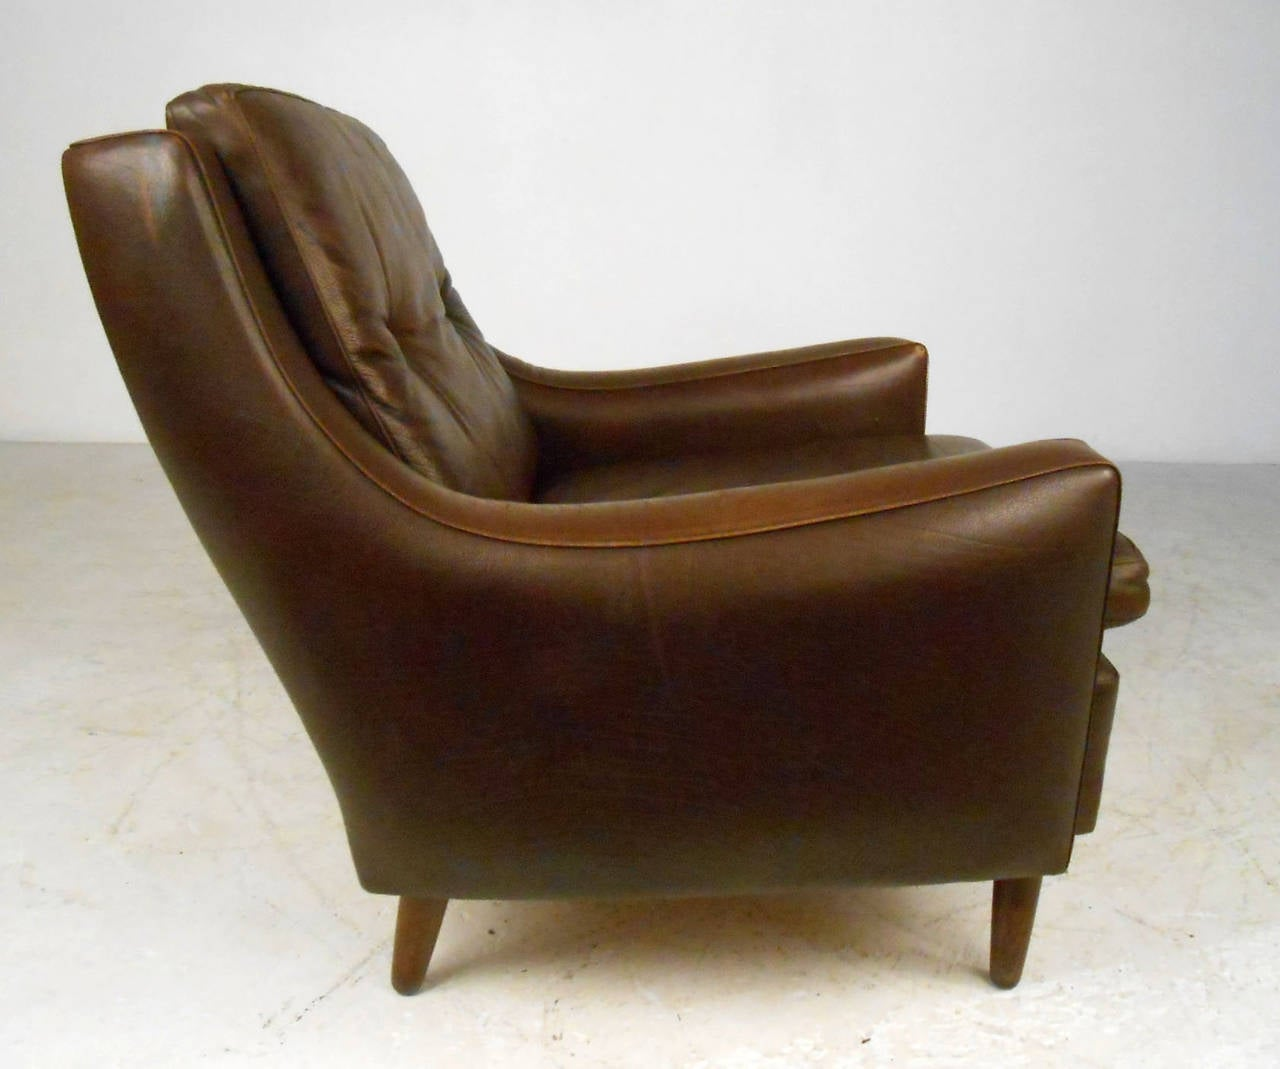 Tufted Leather Chair Mid Century Modern Tufted Brown Leather Club Chair At 1stdibs